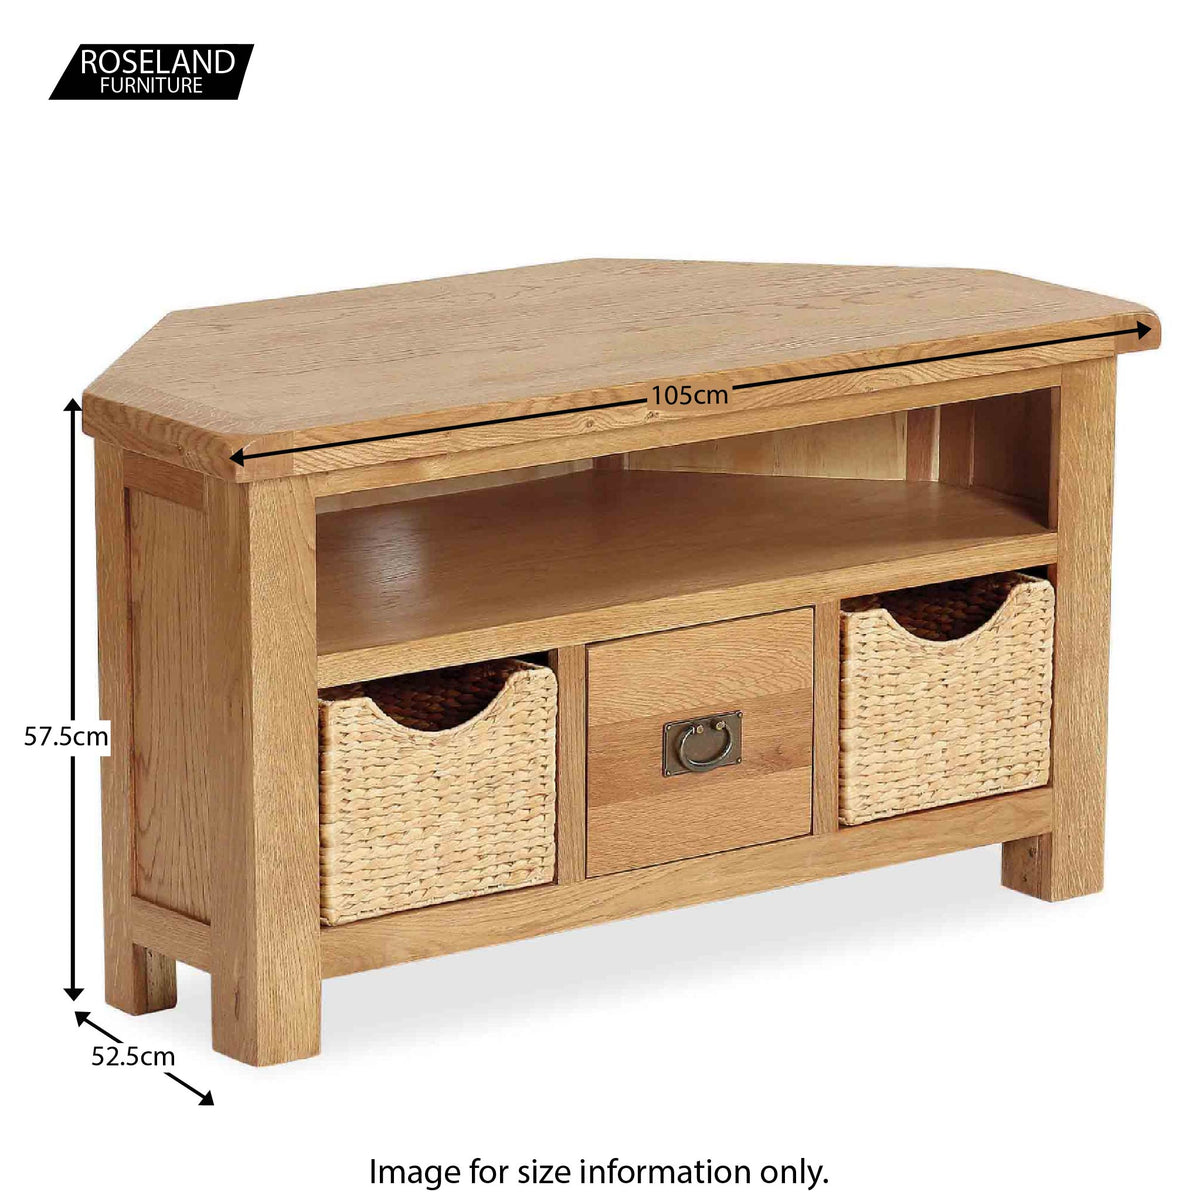 Zelah Oak Corner TV Stand with Baskets - Size Guide